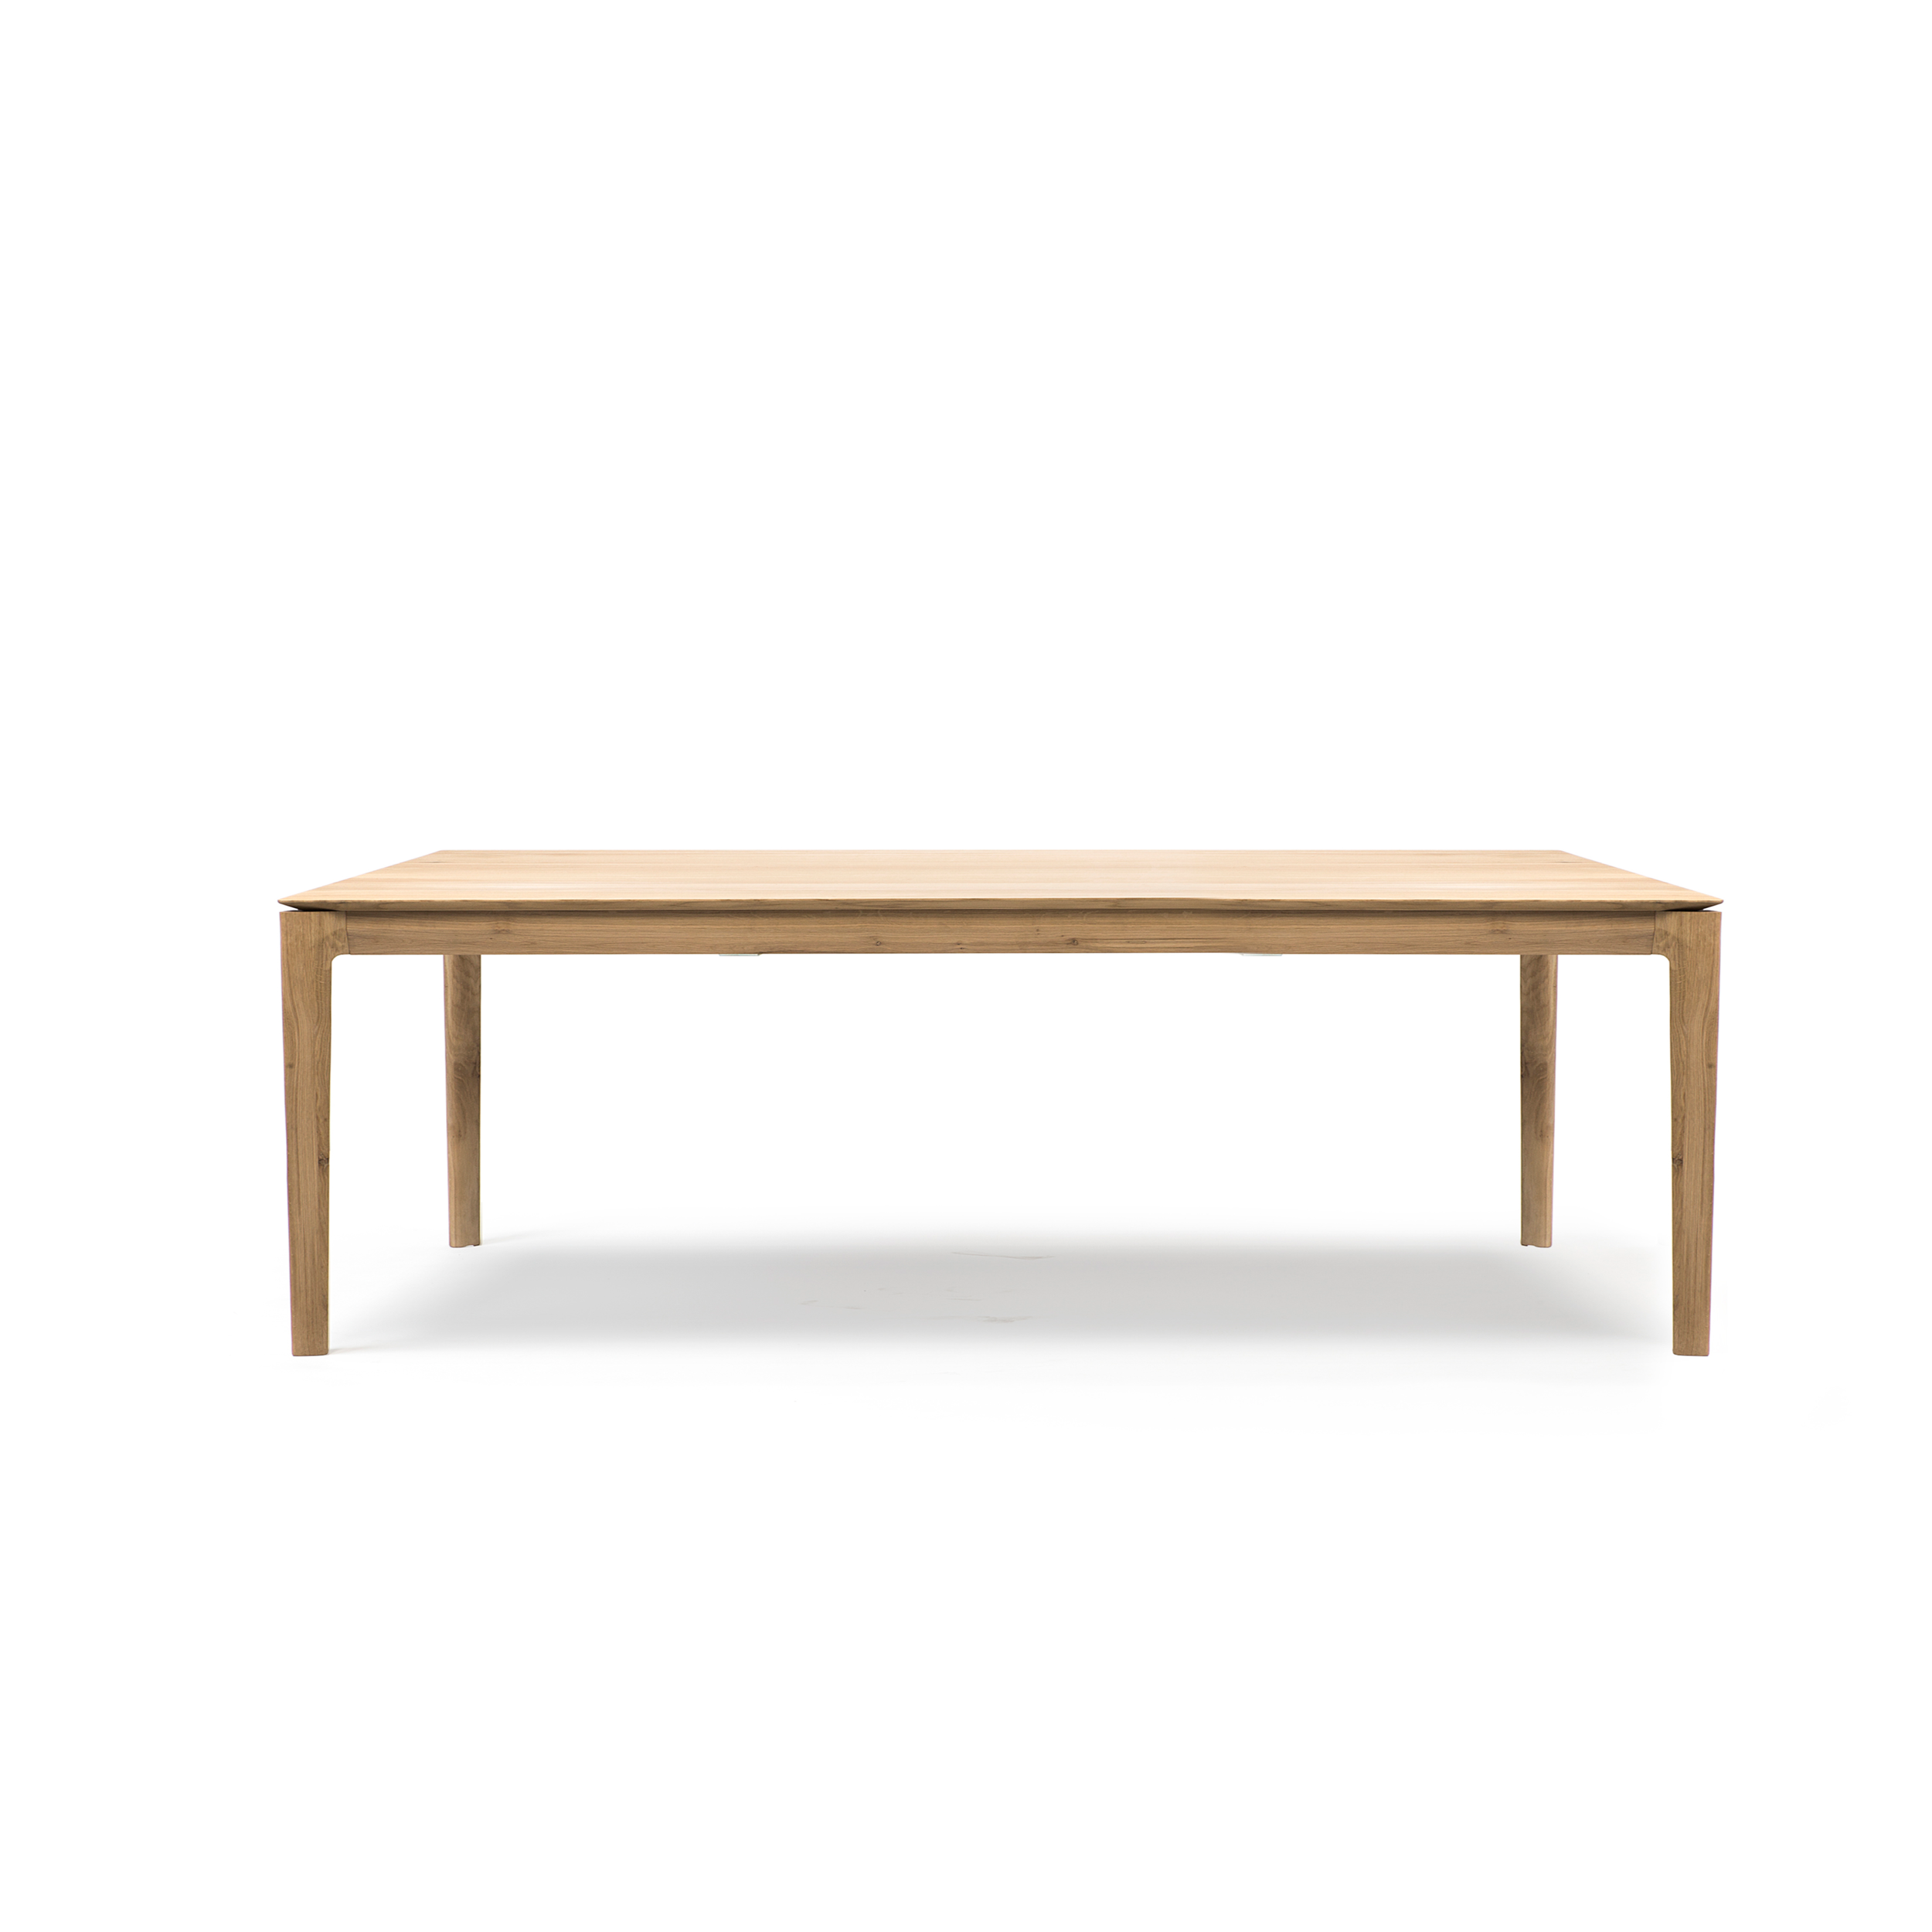 51502, 51503 & 51504 Oak Bok extendable dining table.jpg.png